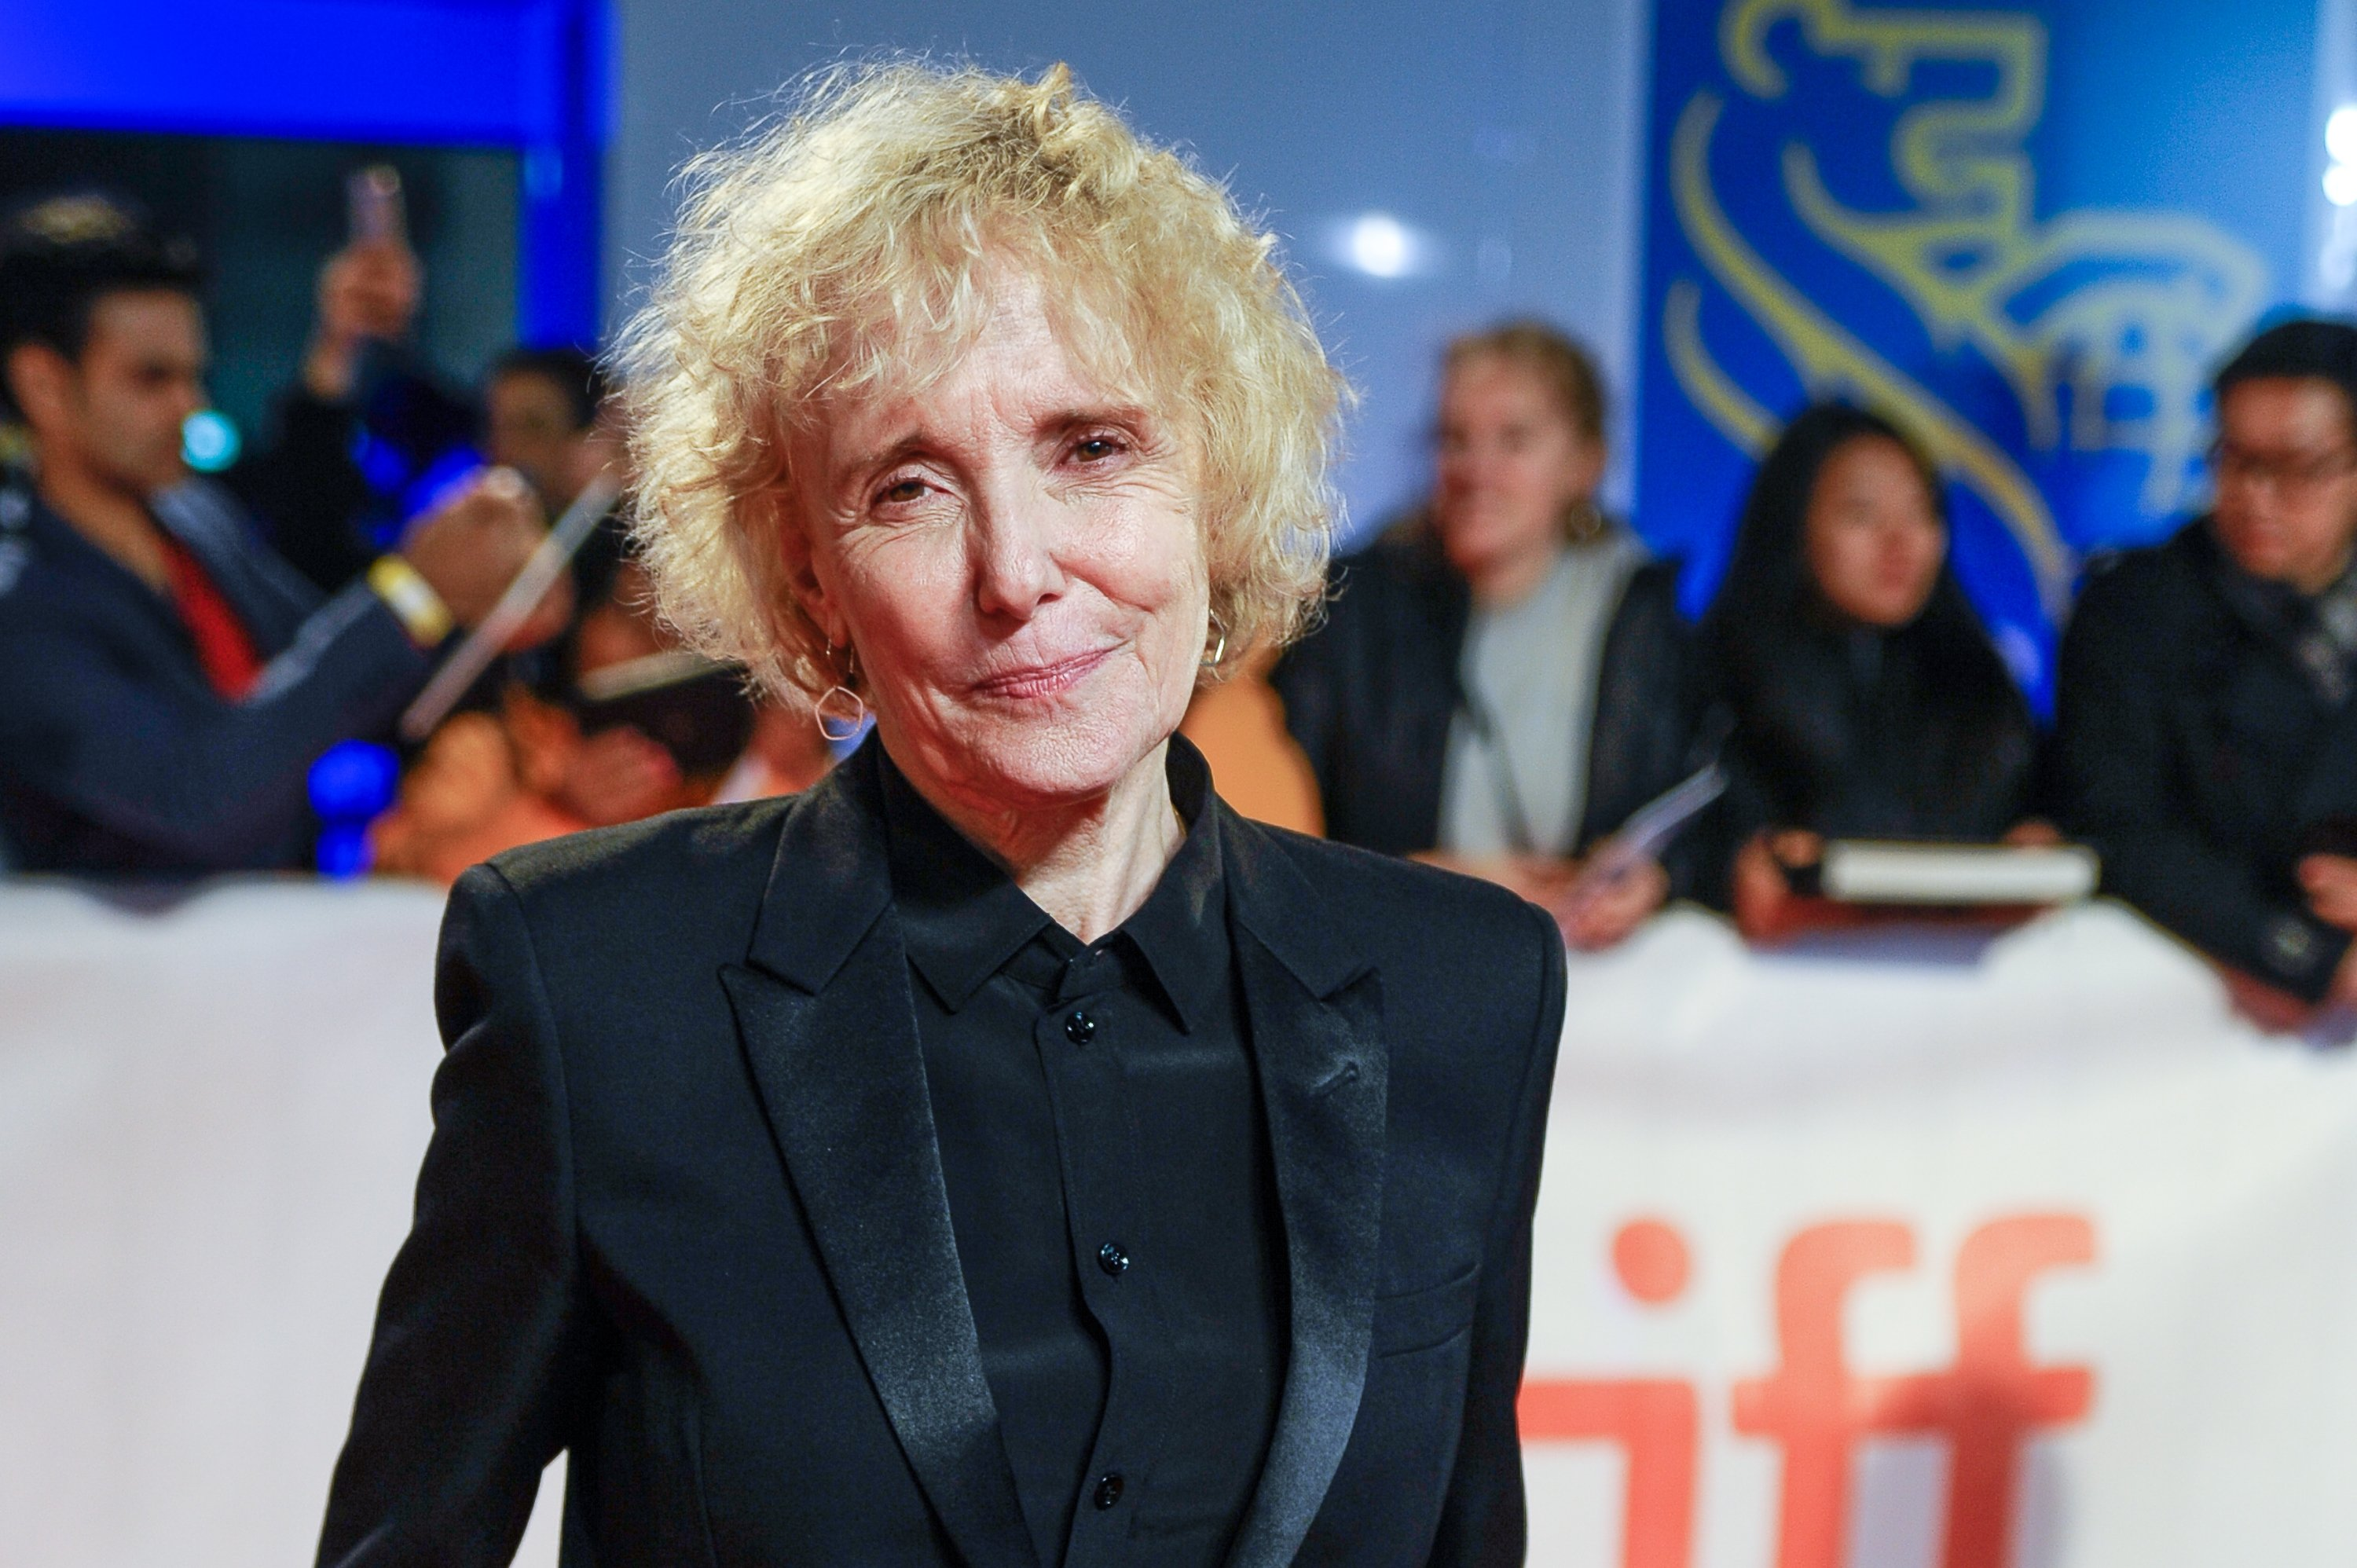 Director Claire Denis attends the 'High Life' Premiere at Roy Thomson Hall on Sept. 9, 2018, Toronto, Canada.  (Getty Images)